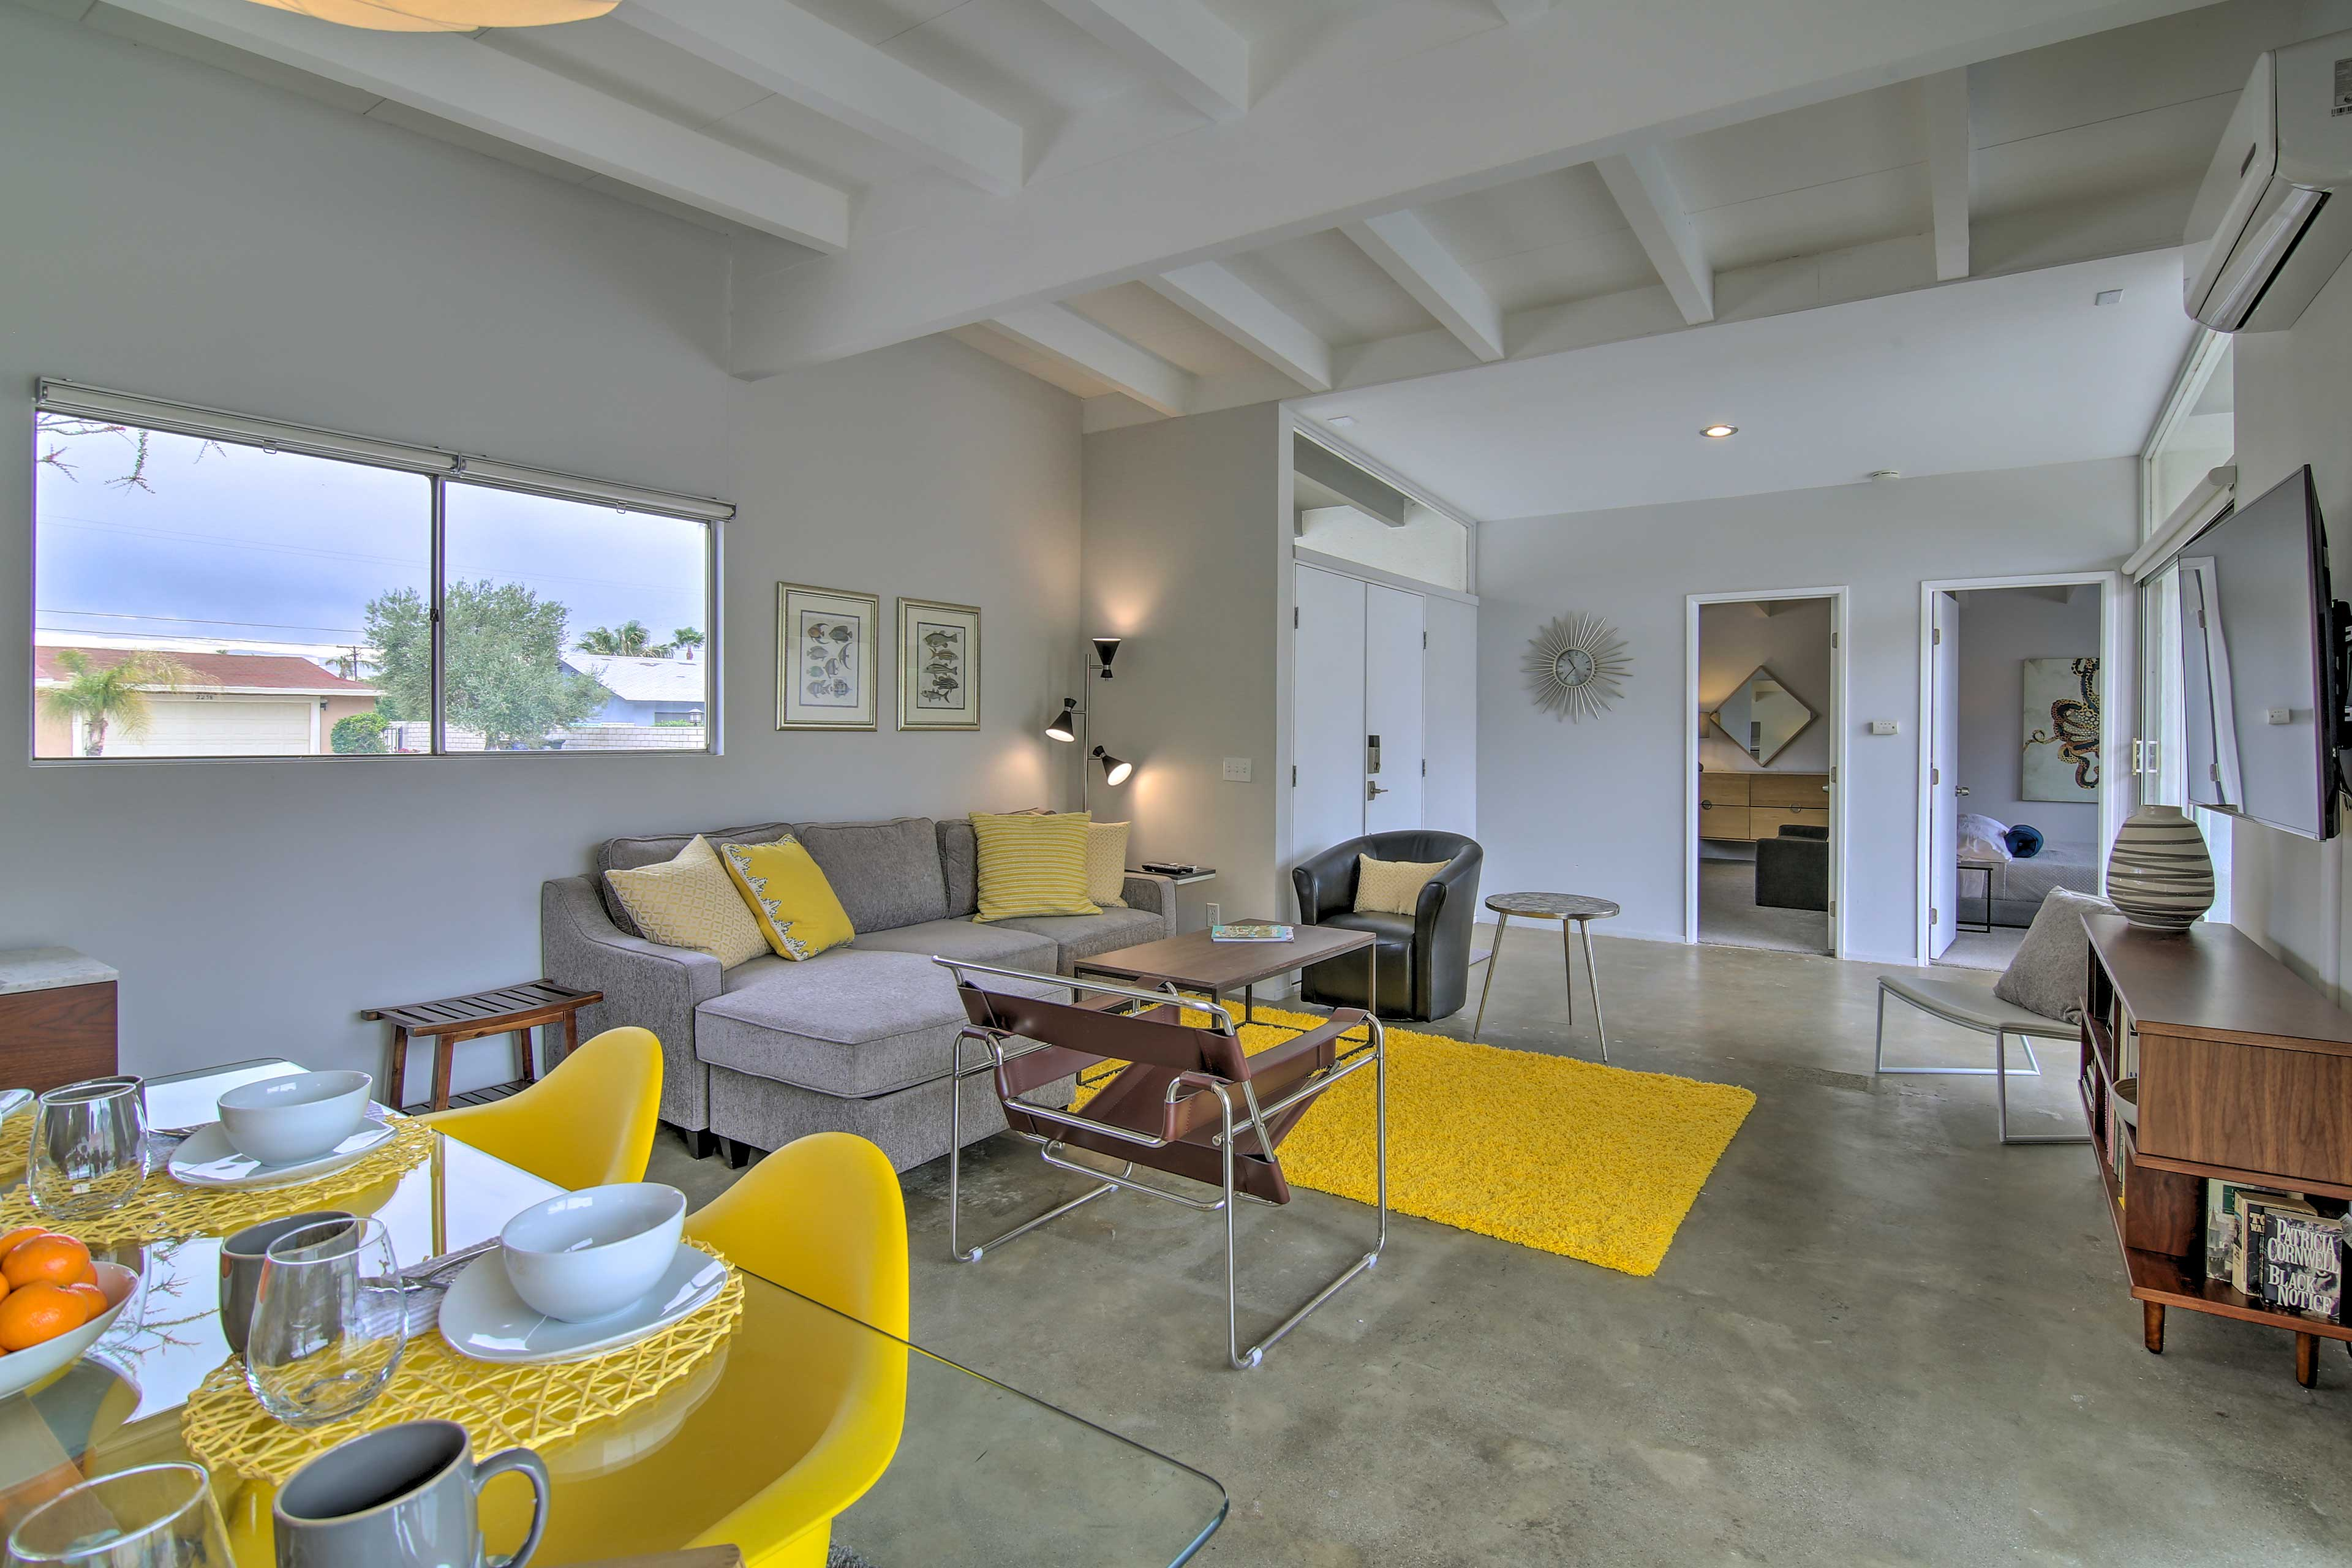 The spacious living area is the prefect space to convene as a family.